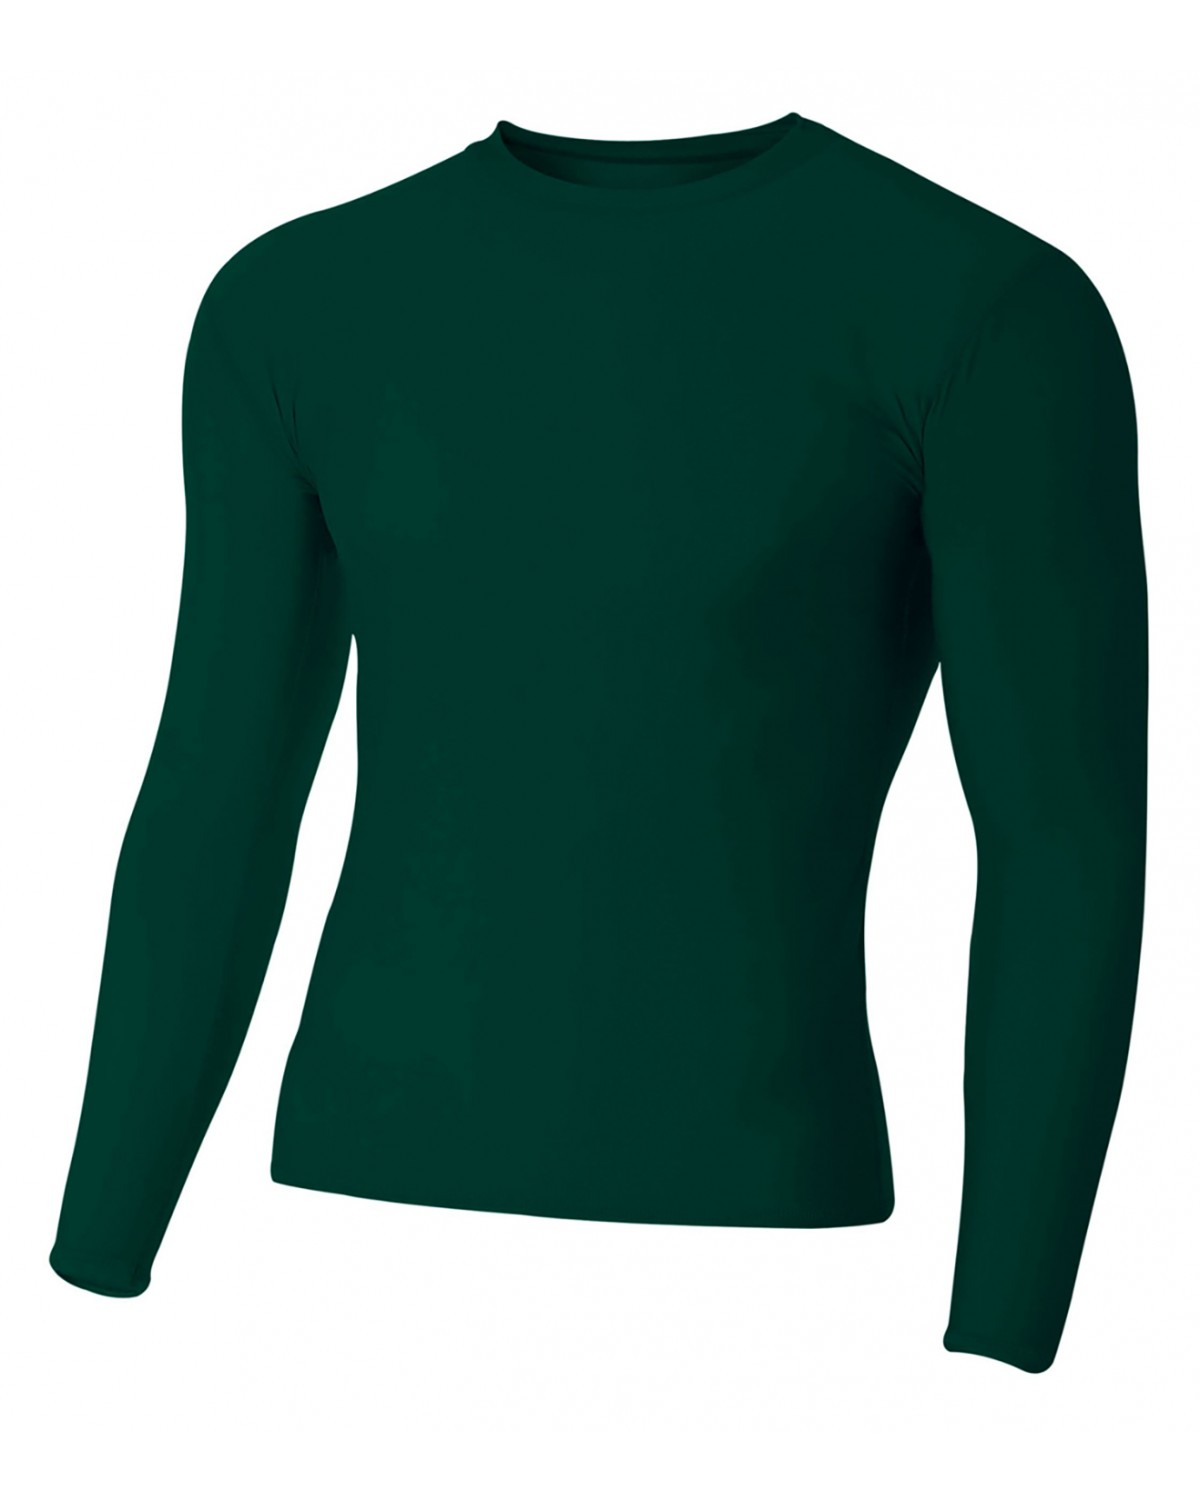 N3133 A4 Drop Ship FOREST GREEN